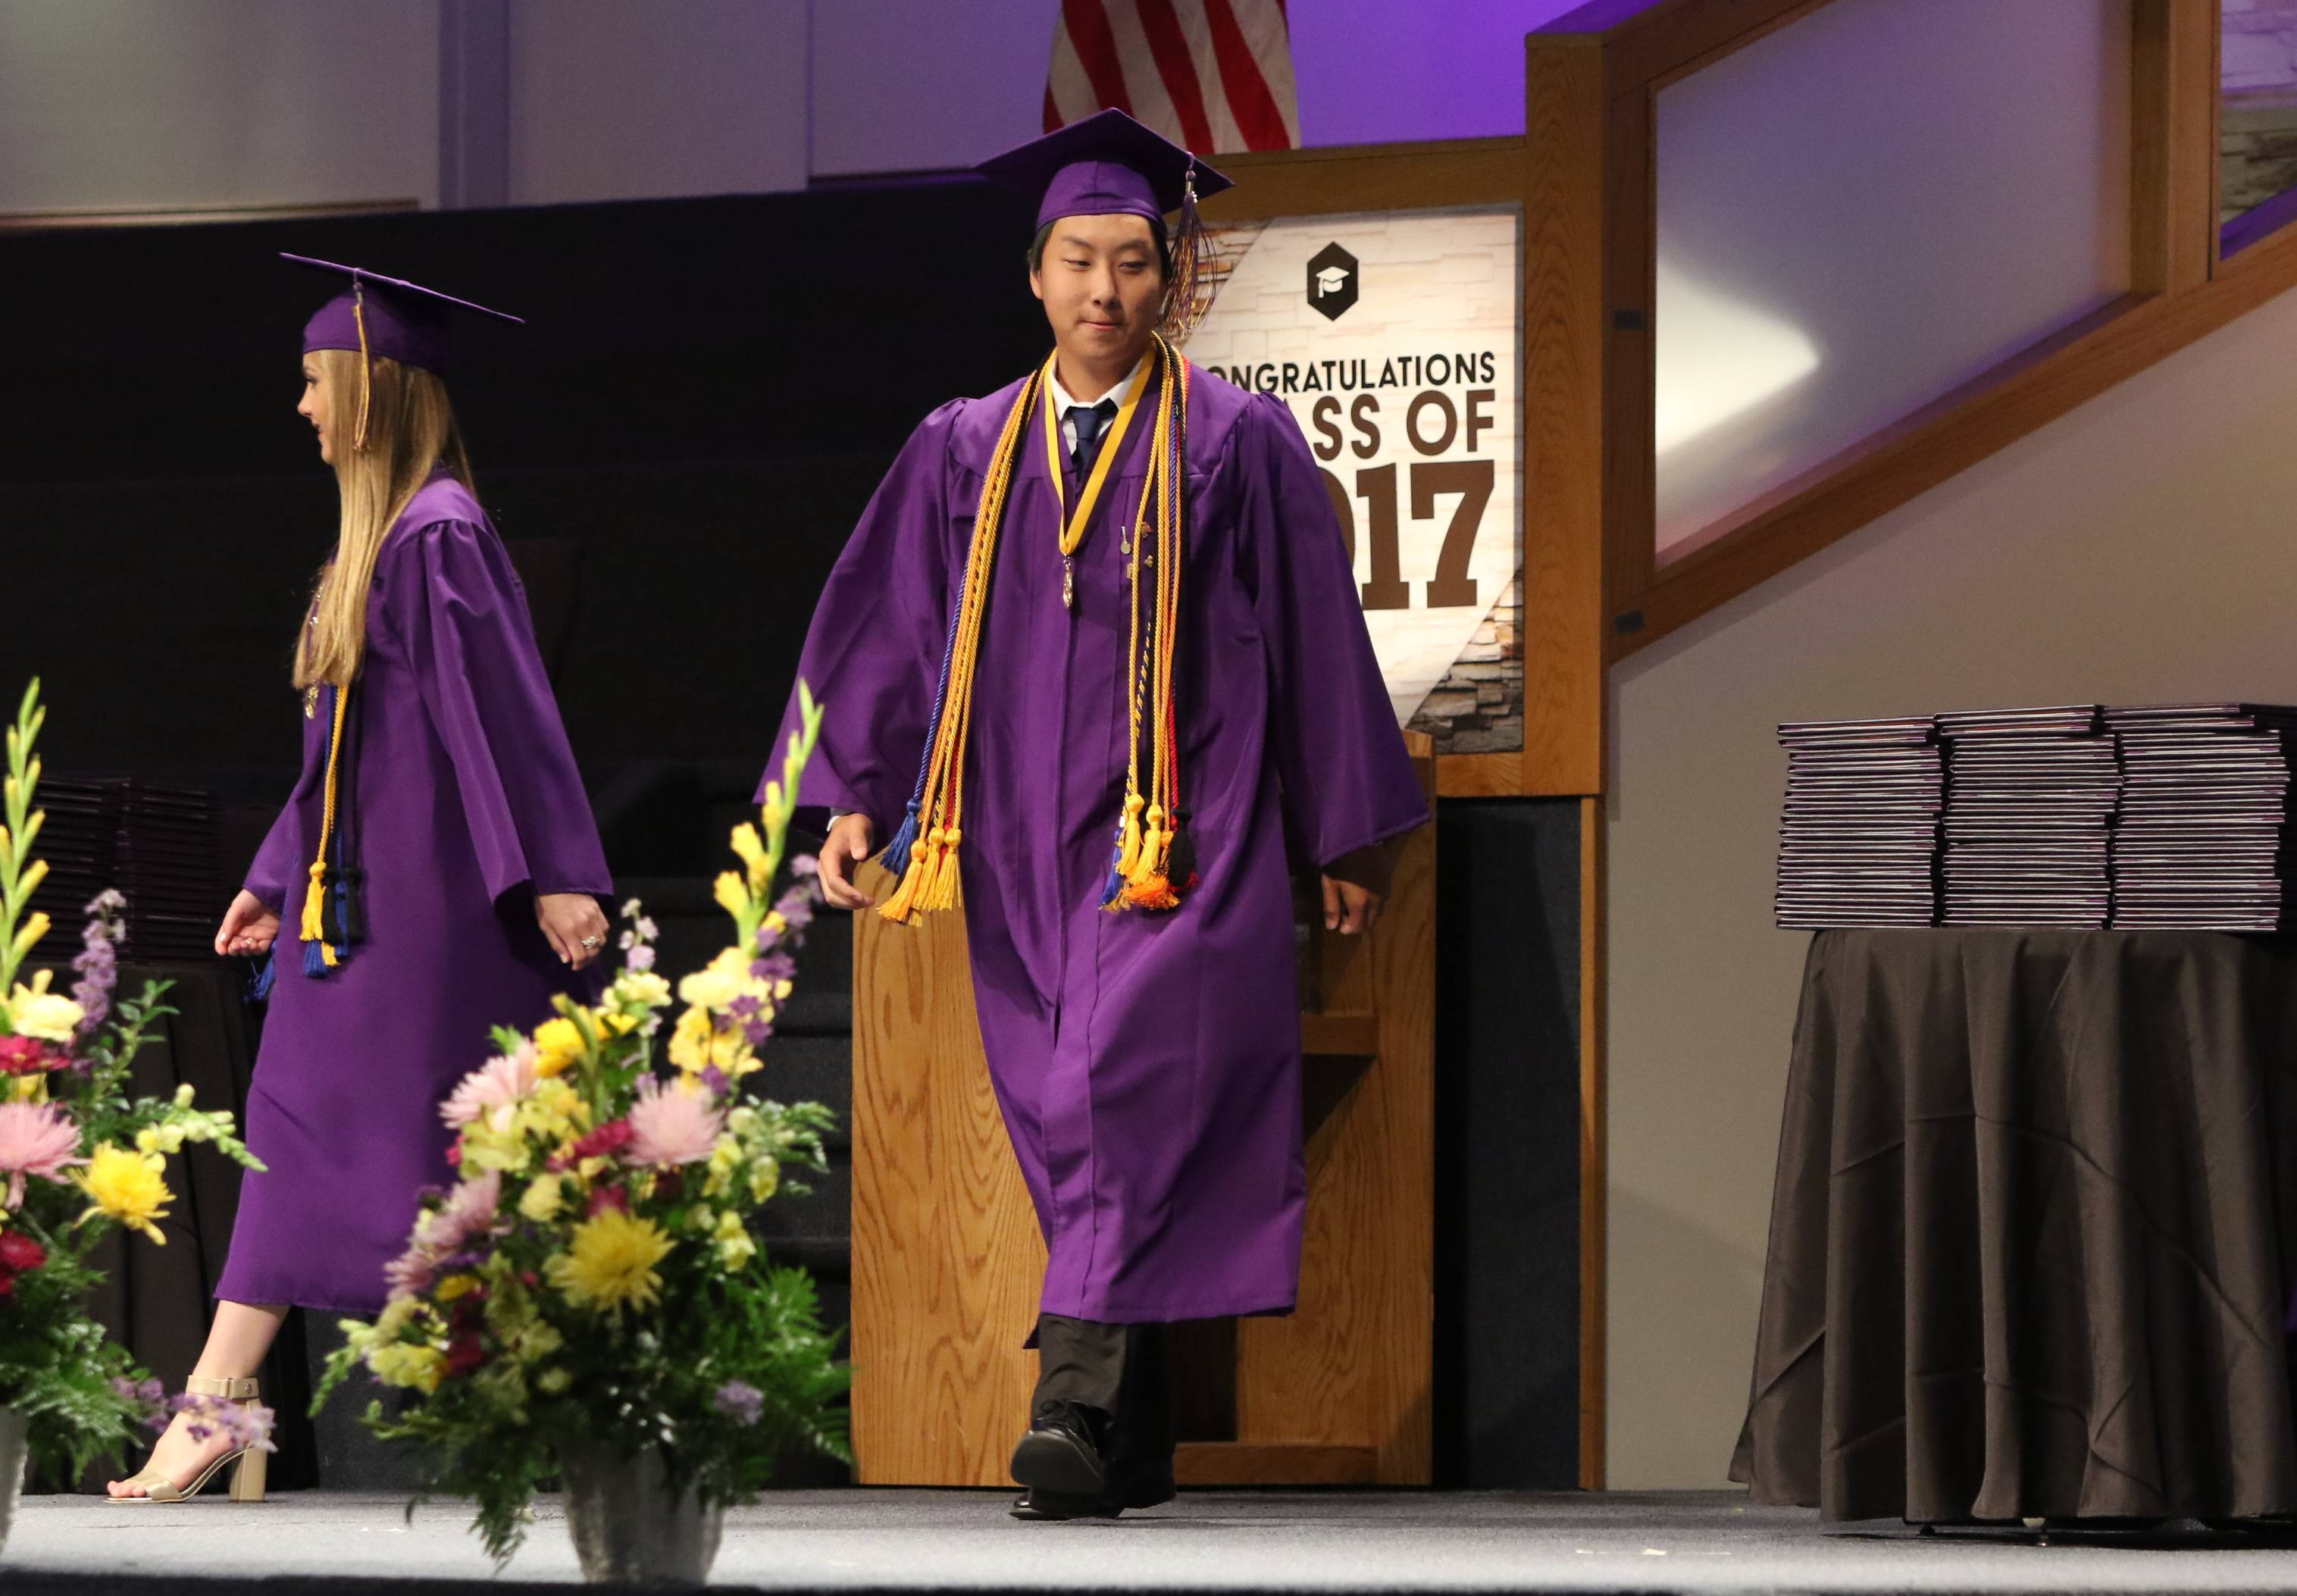 Wauconda High School's graduation ceremony was held at the Quentin Road Bible Baptist Church in Lake Zurich, the cheapest suburban venue at $3,500.